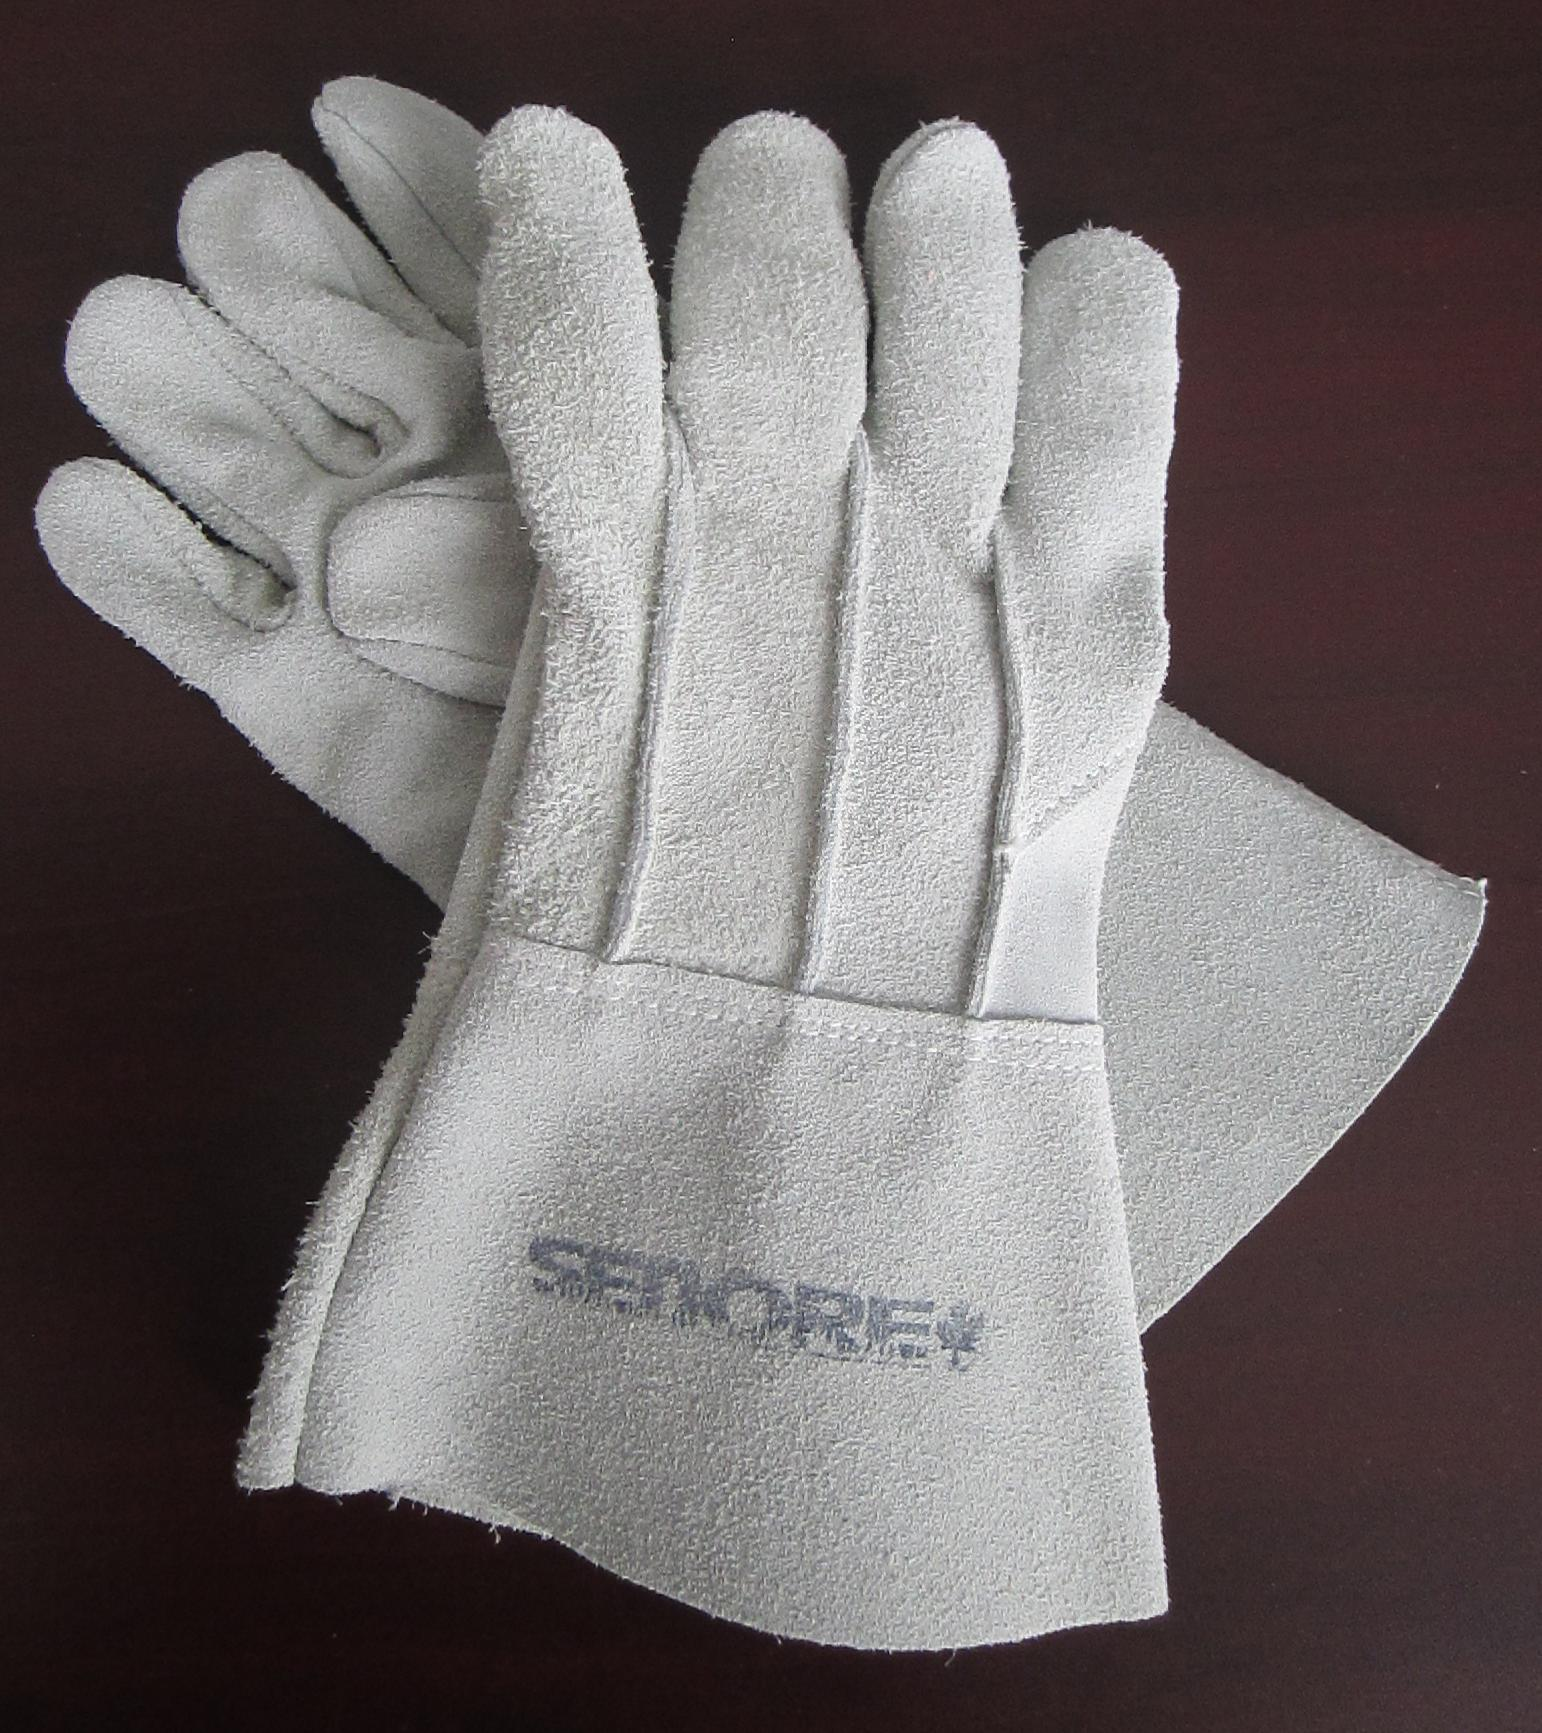 Sedore insulated fire gloves